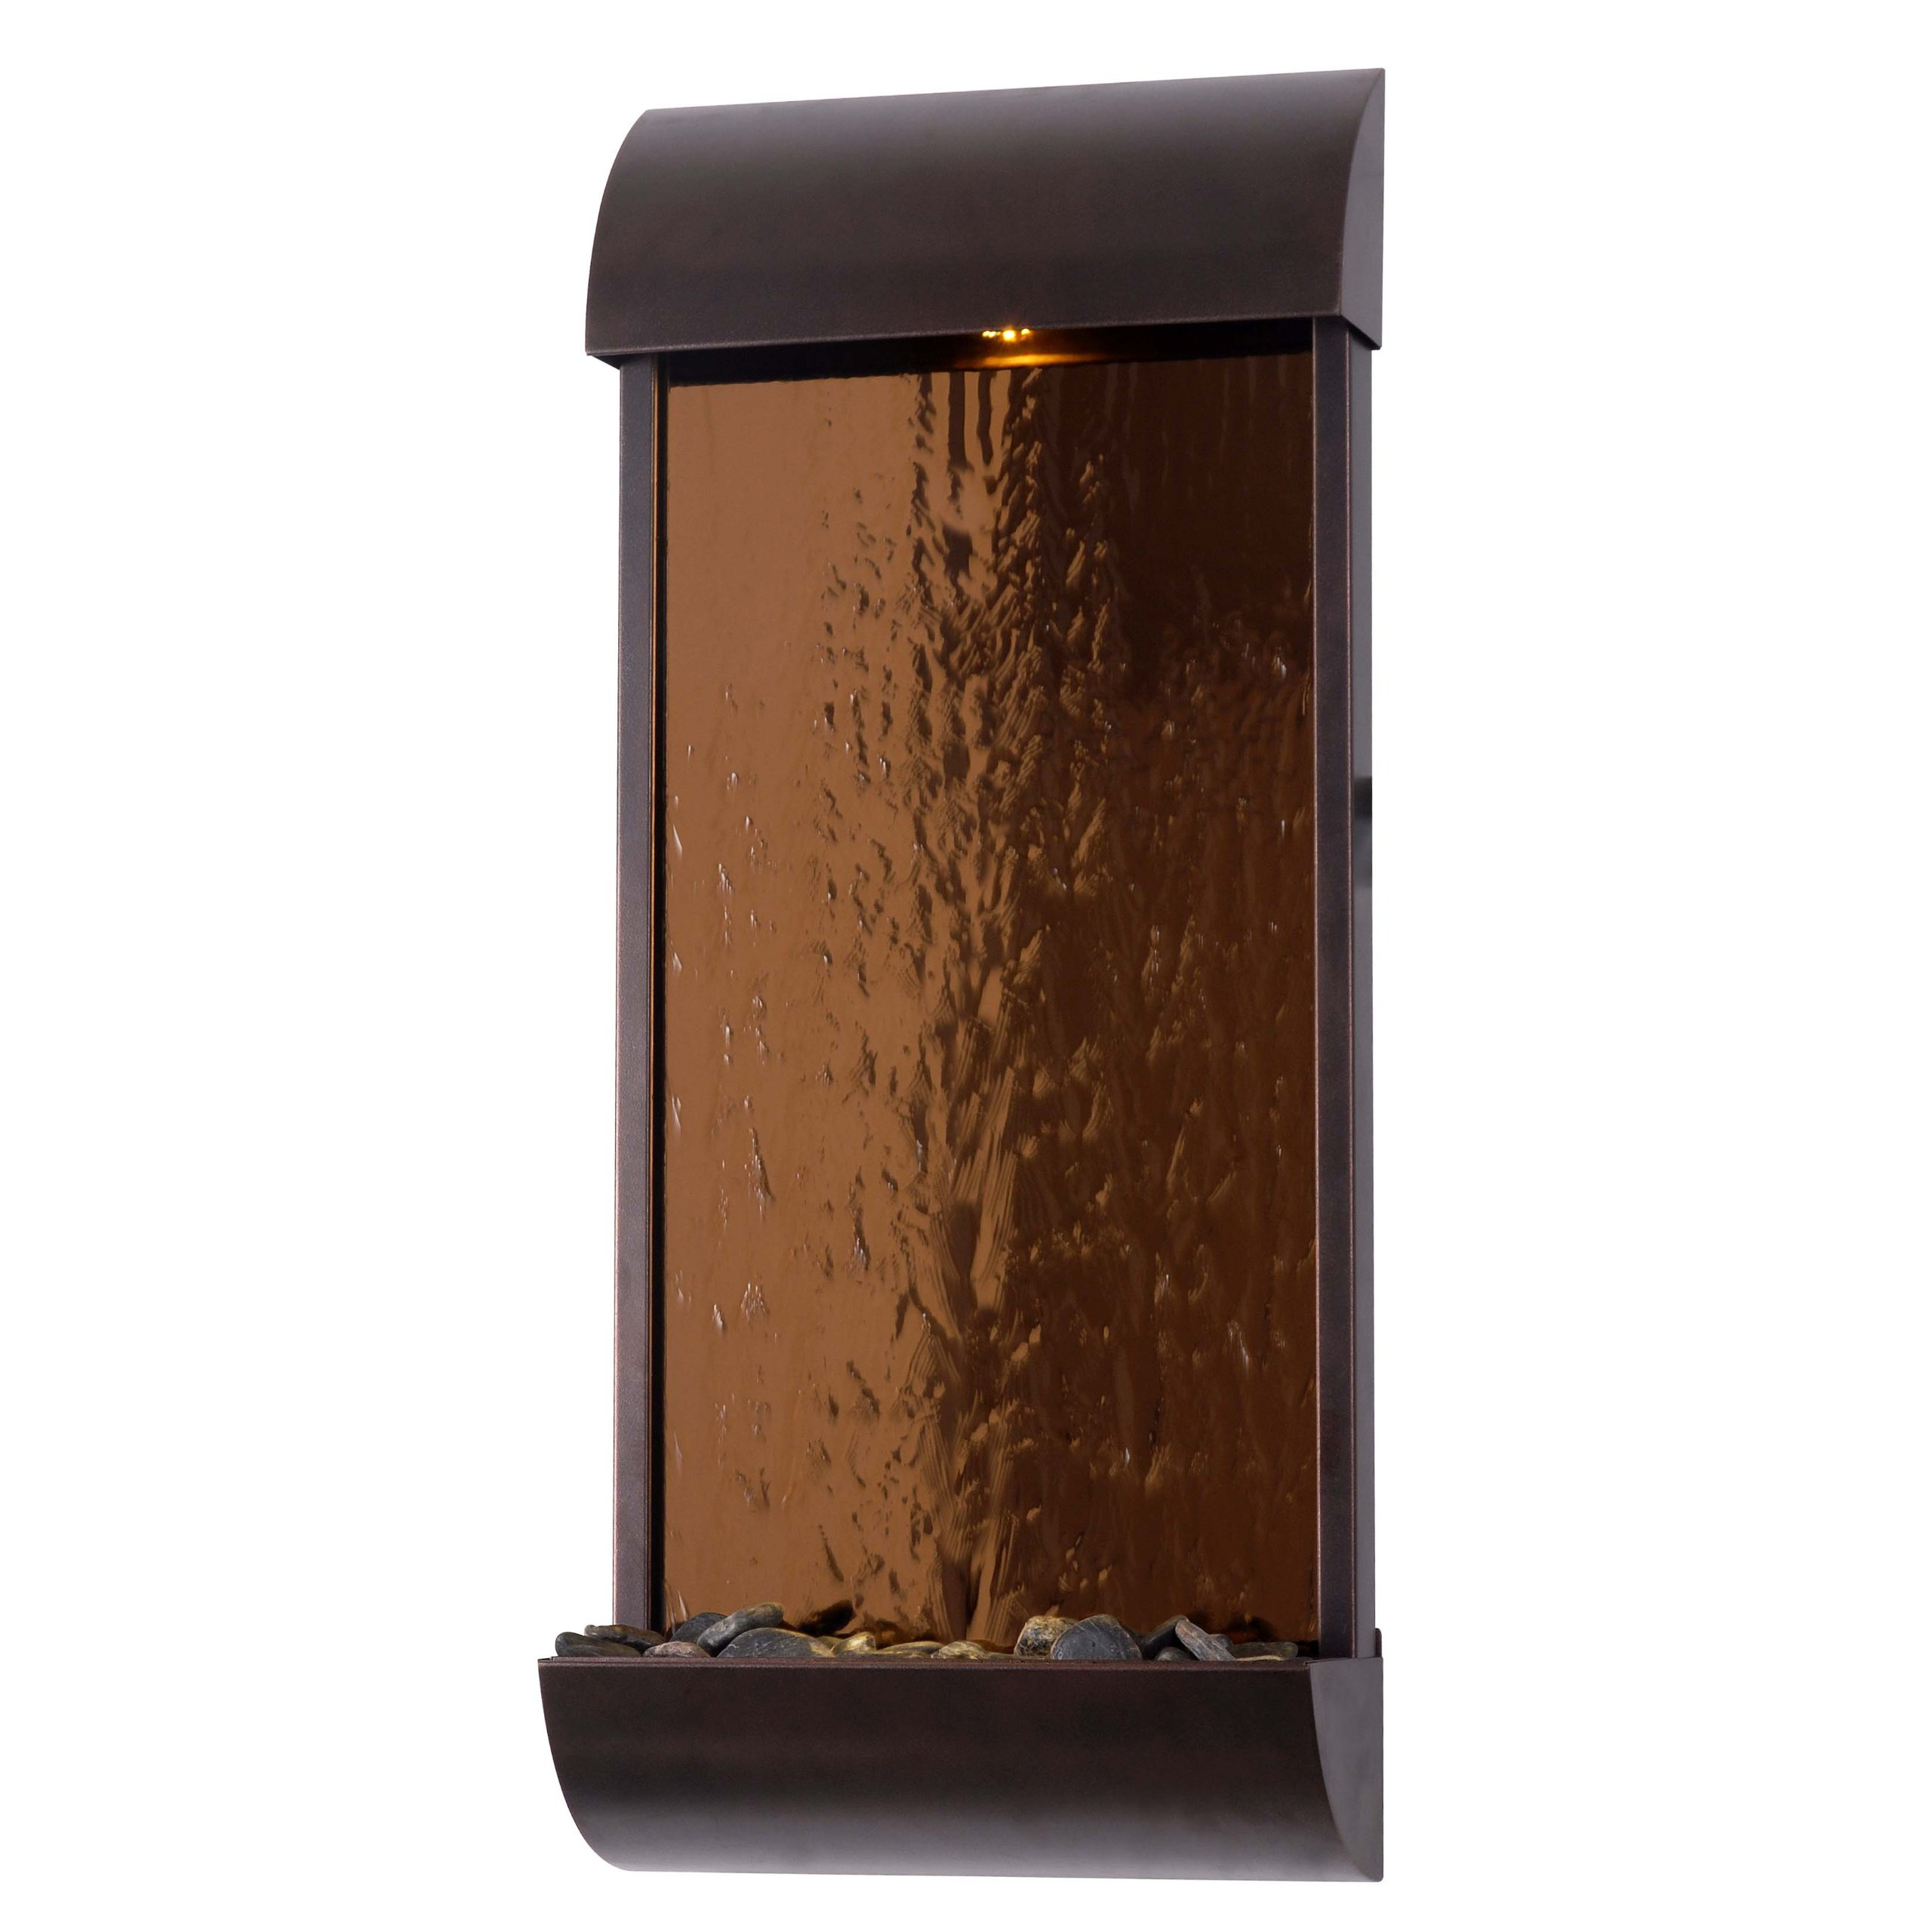 Kenroy Home 50048BRZ Aspen Wall Fountain, Bronze Finish with Copper Mirrored Face